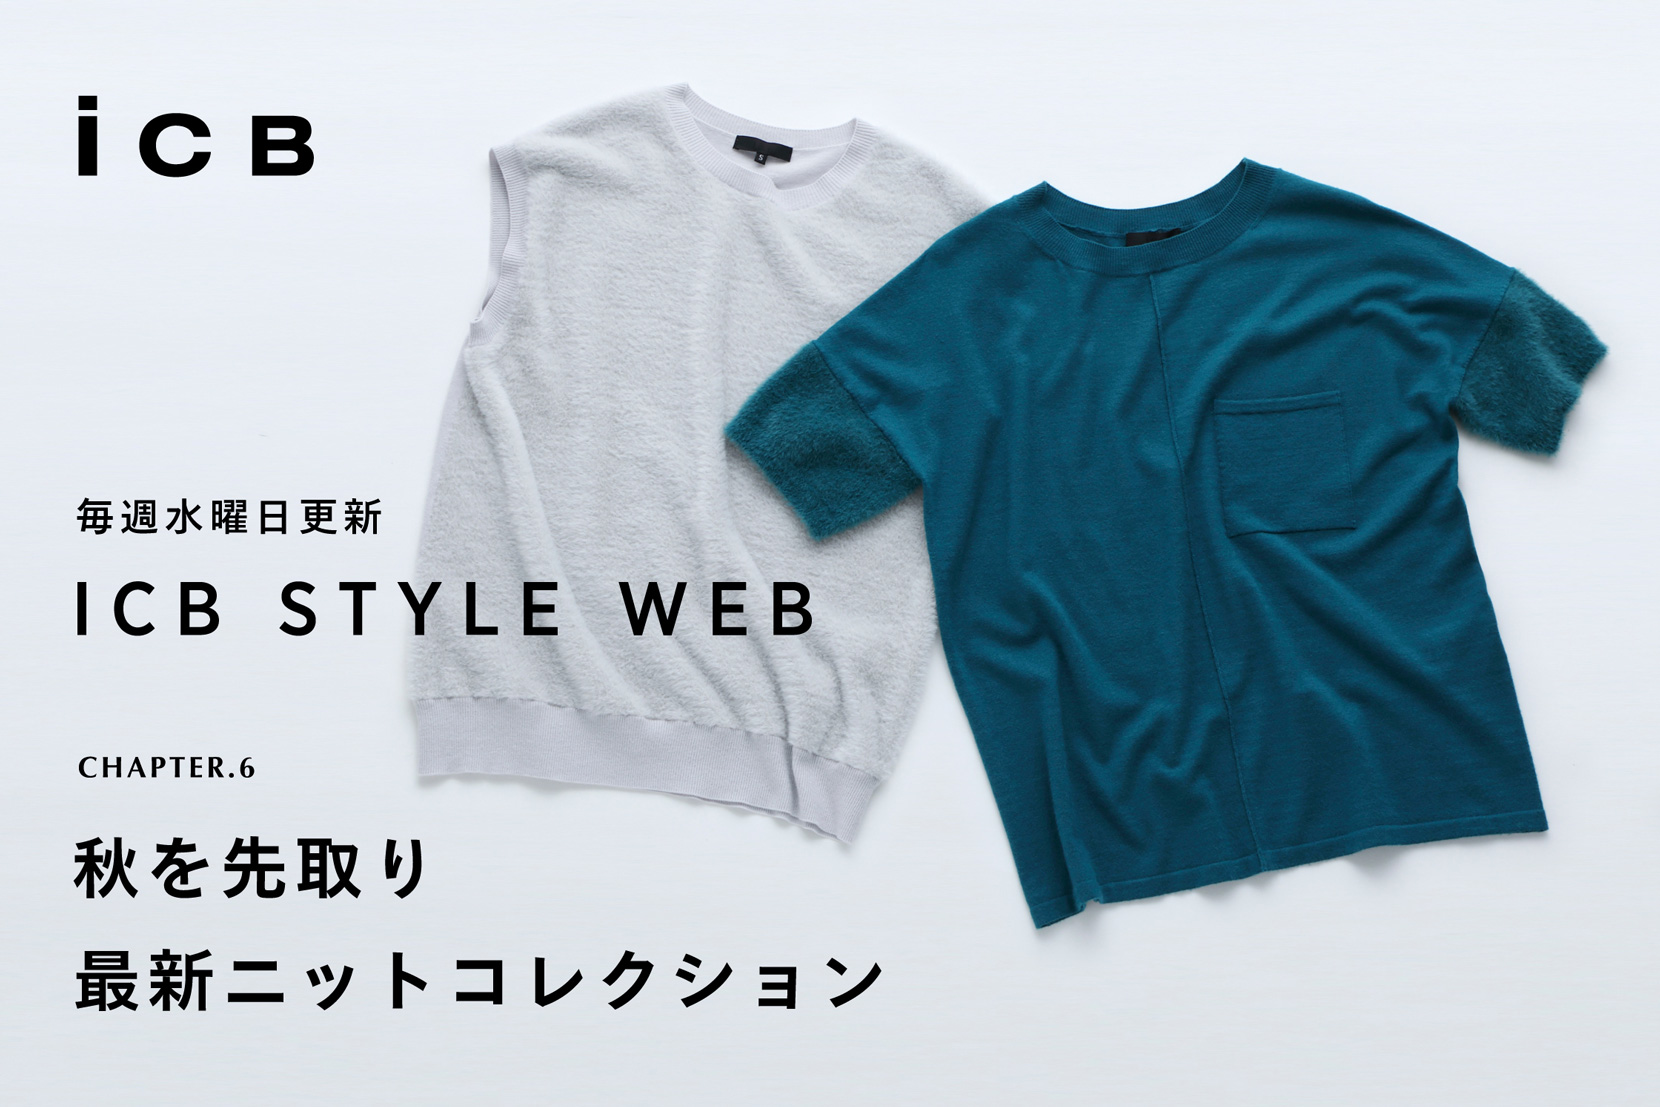 ICB STYLE WEB chapter.6「秋を先取り 最新ニットコレクション」- ICB